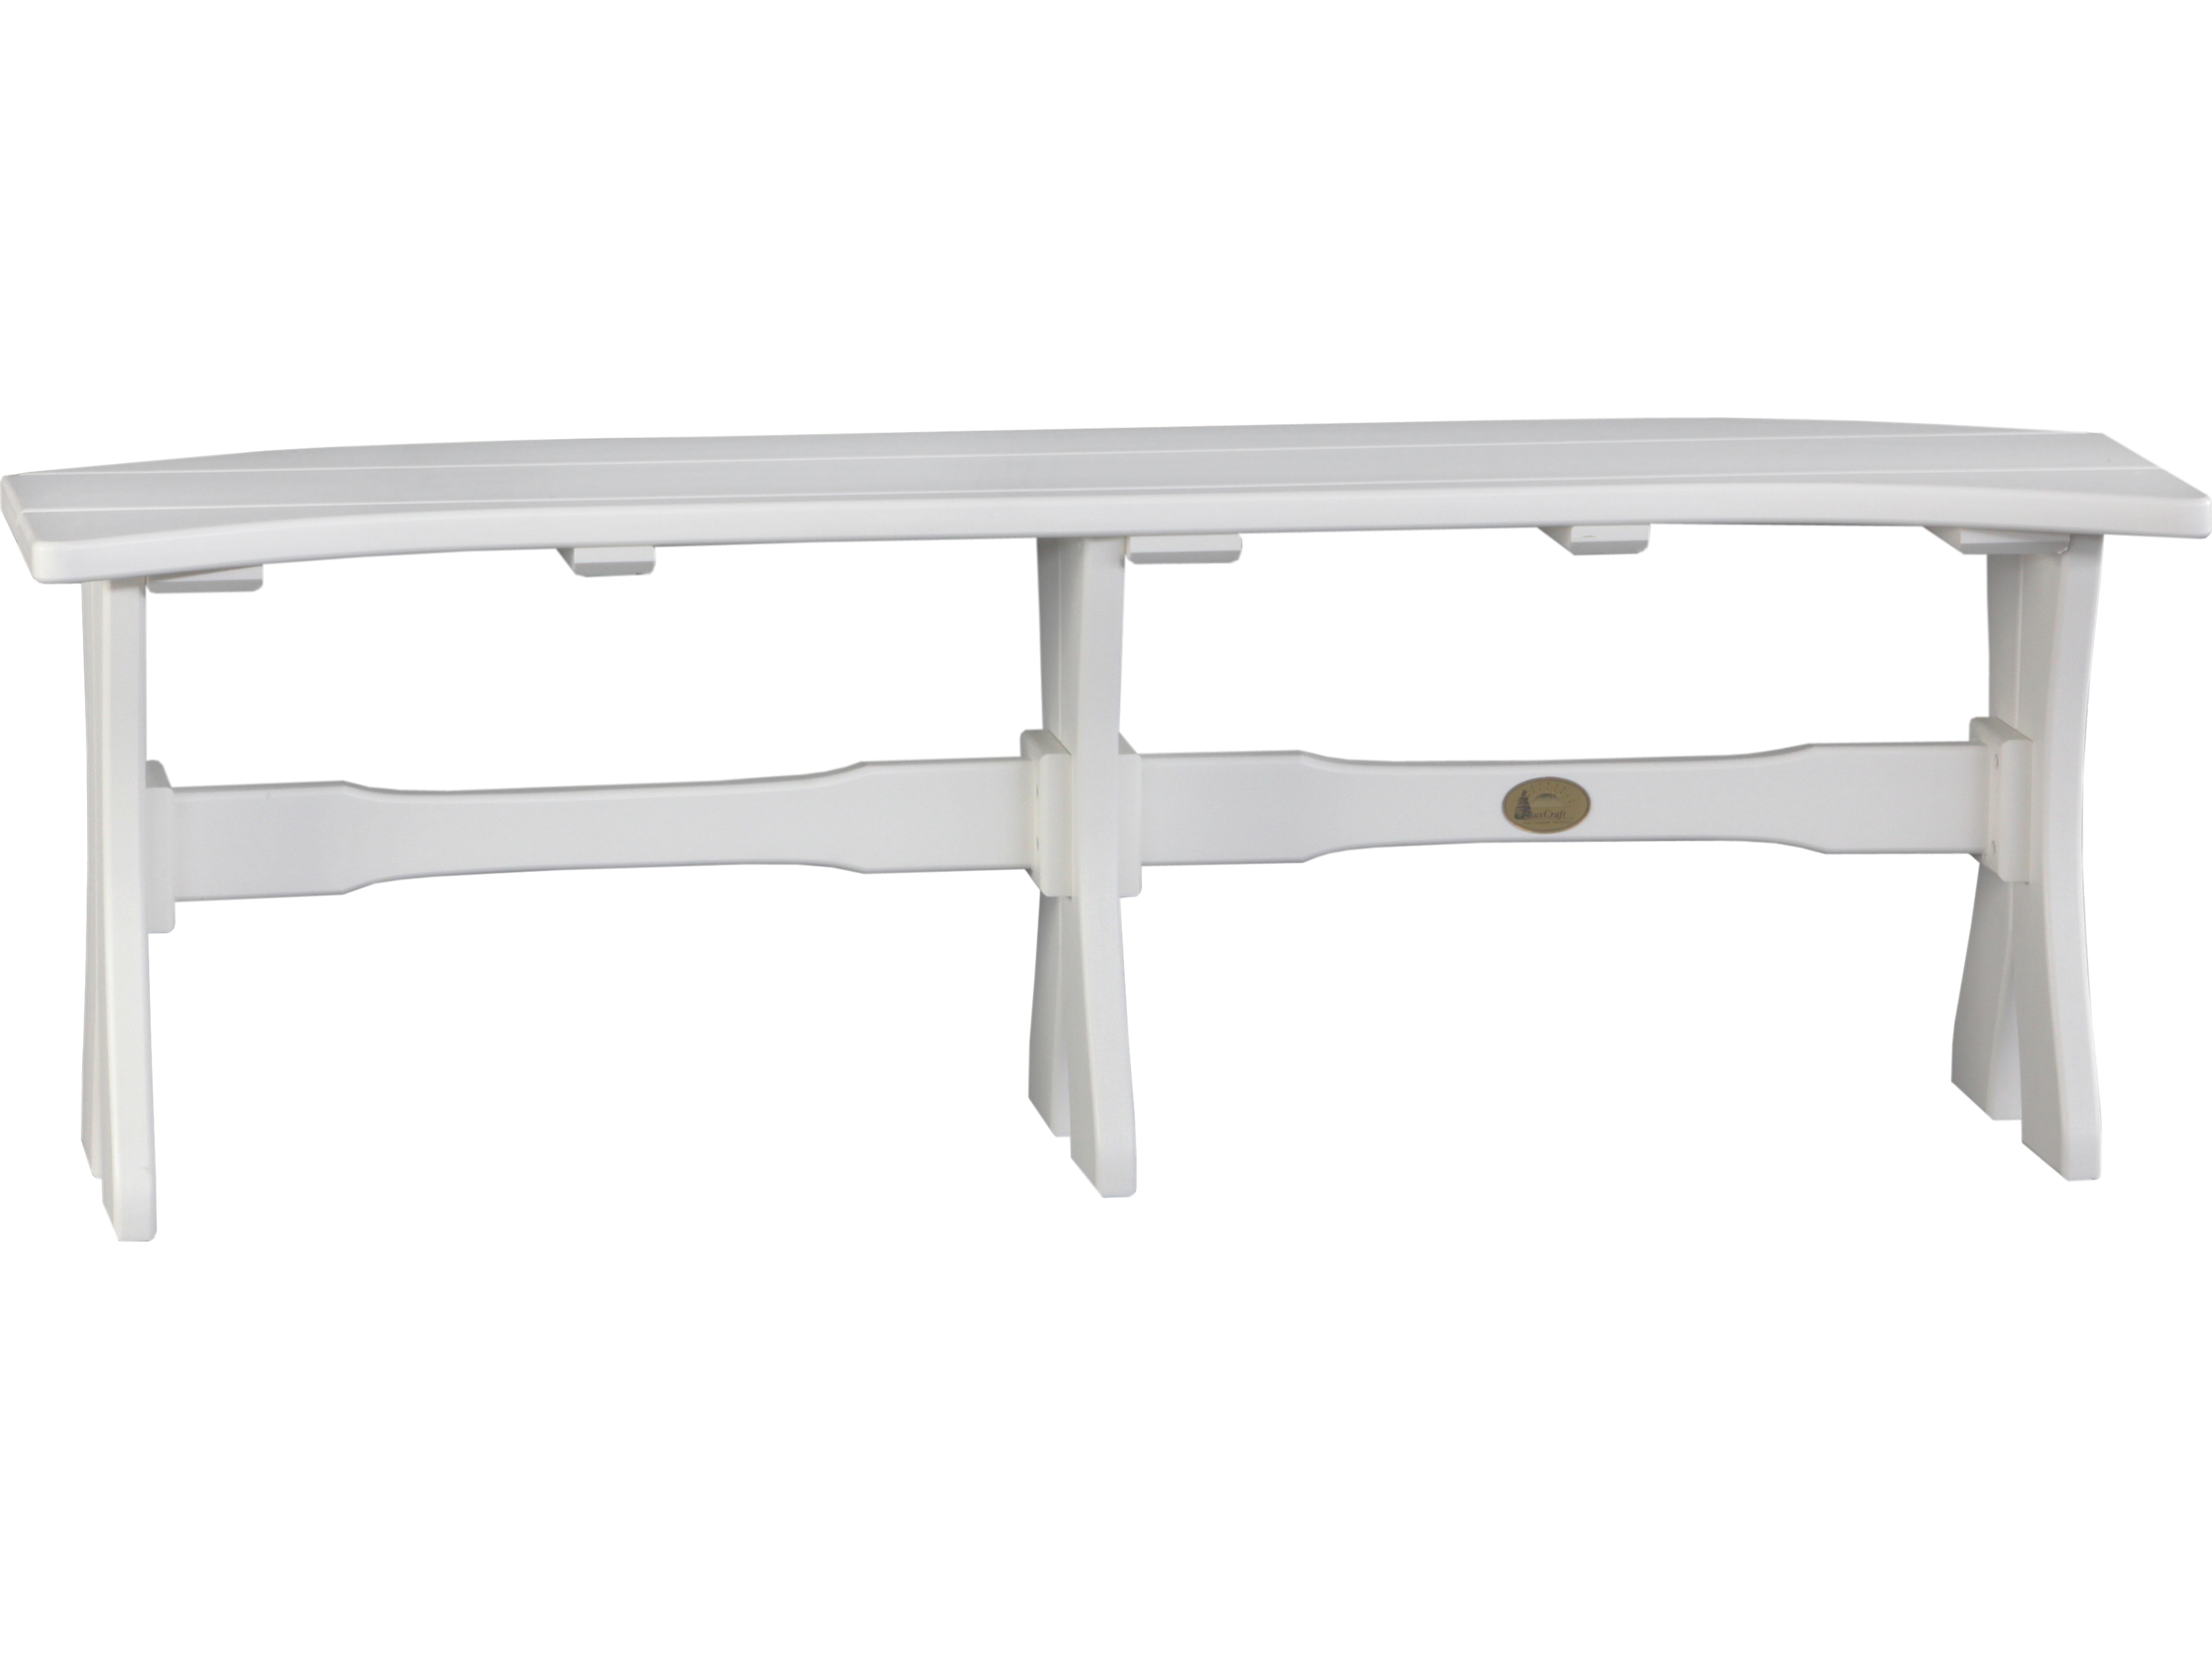 Luxcraft recycled plastic 52 table bench luxp52tbdining for 52 table view